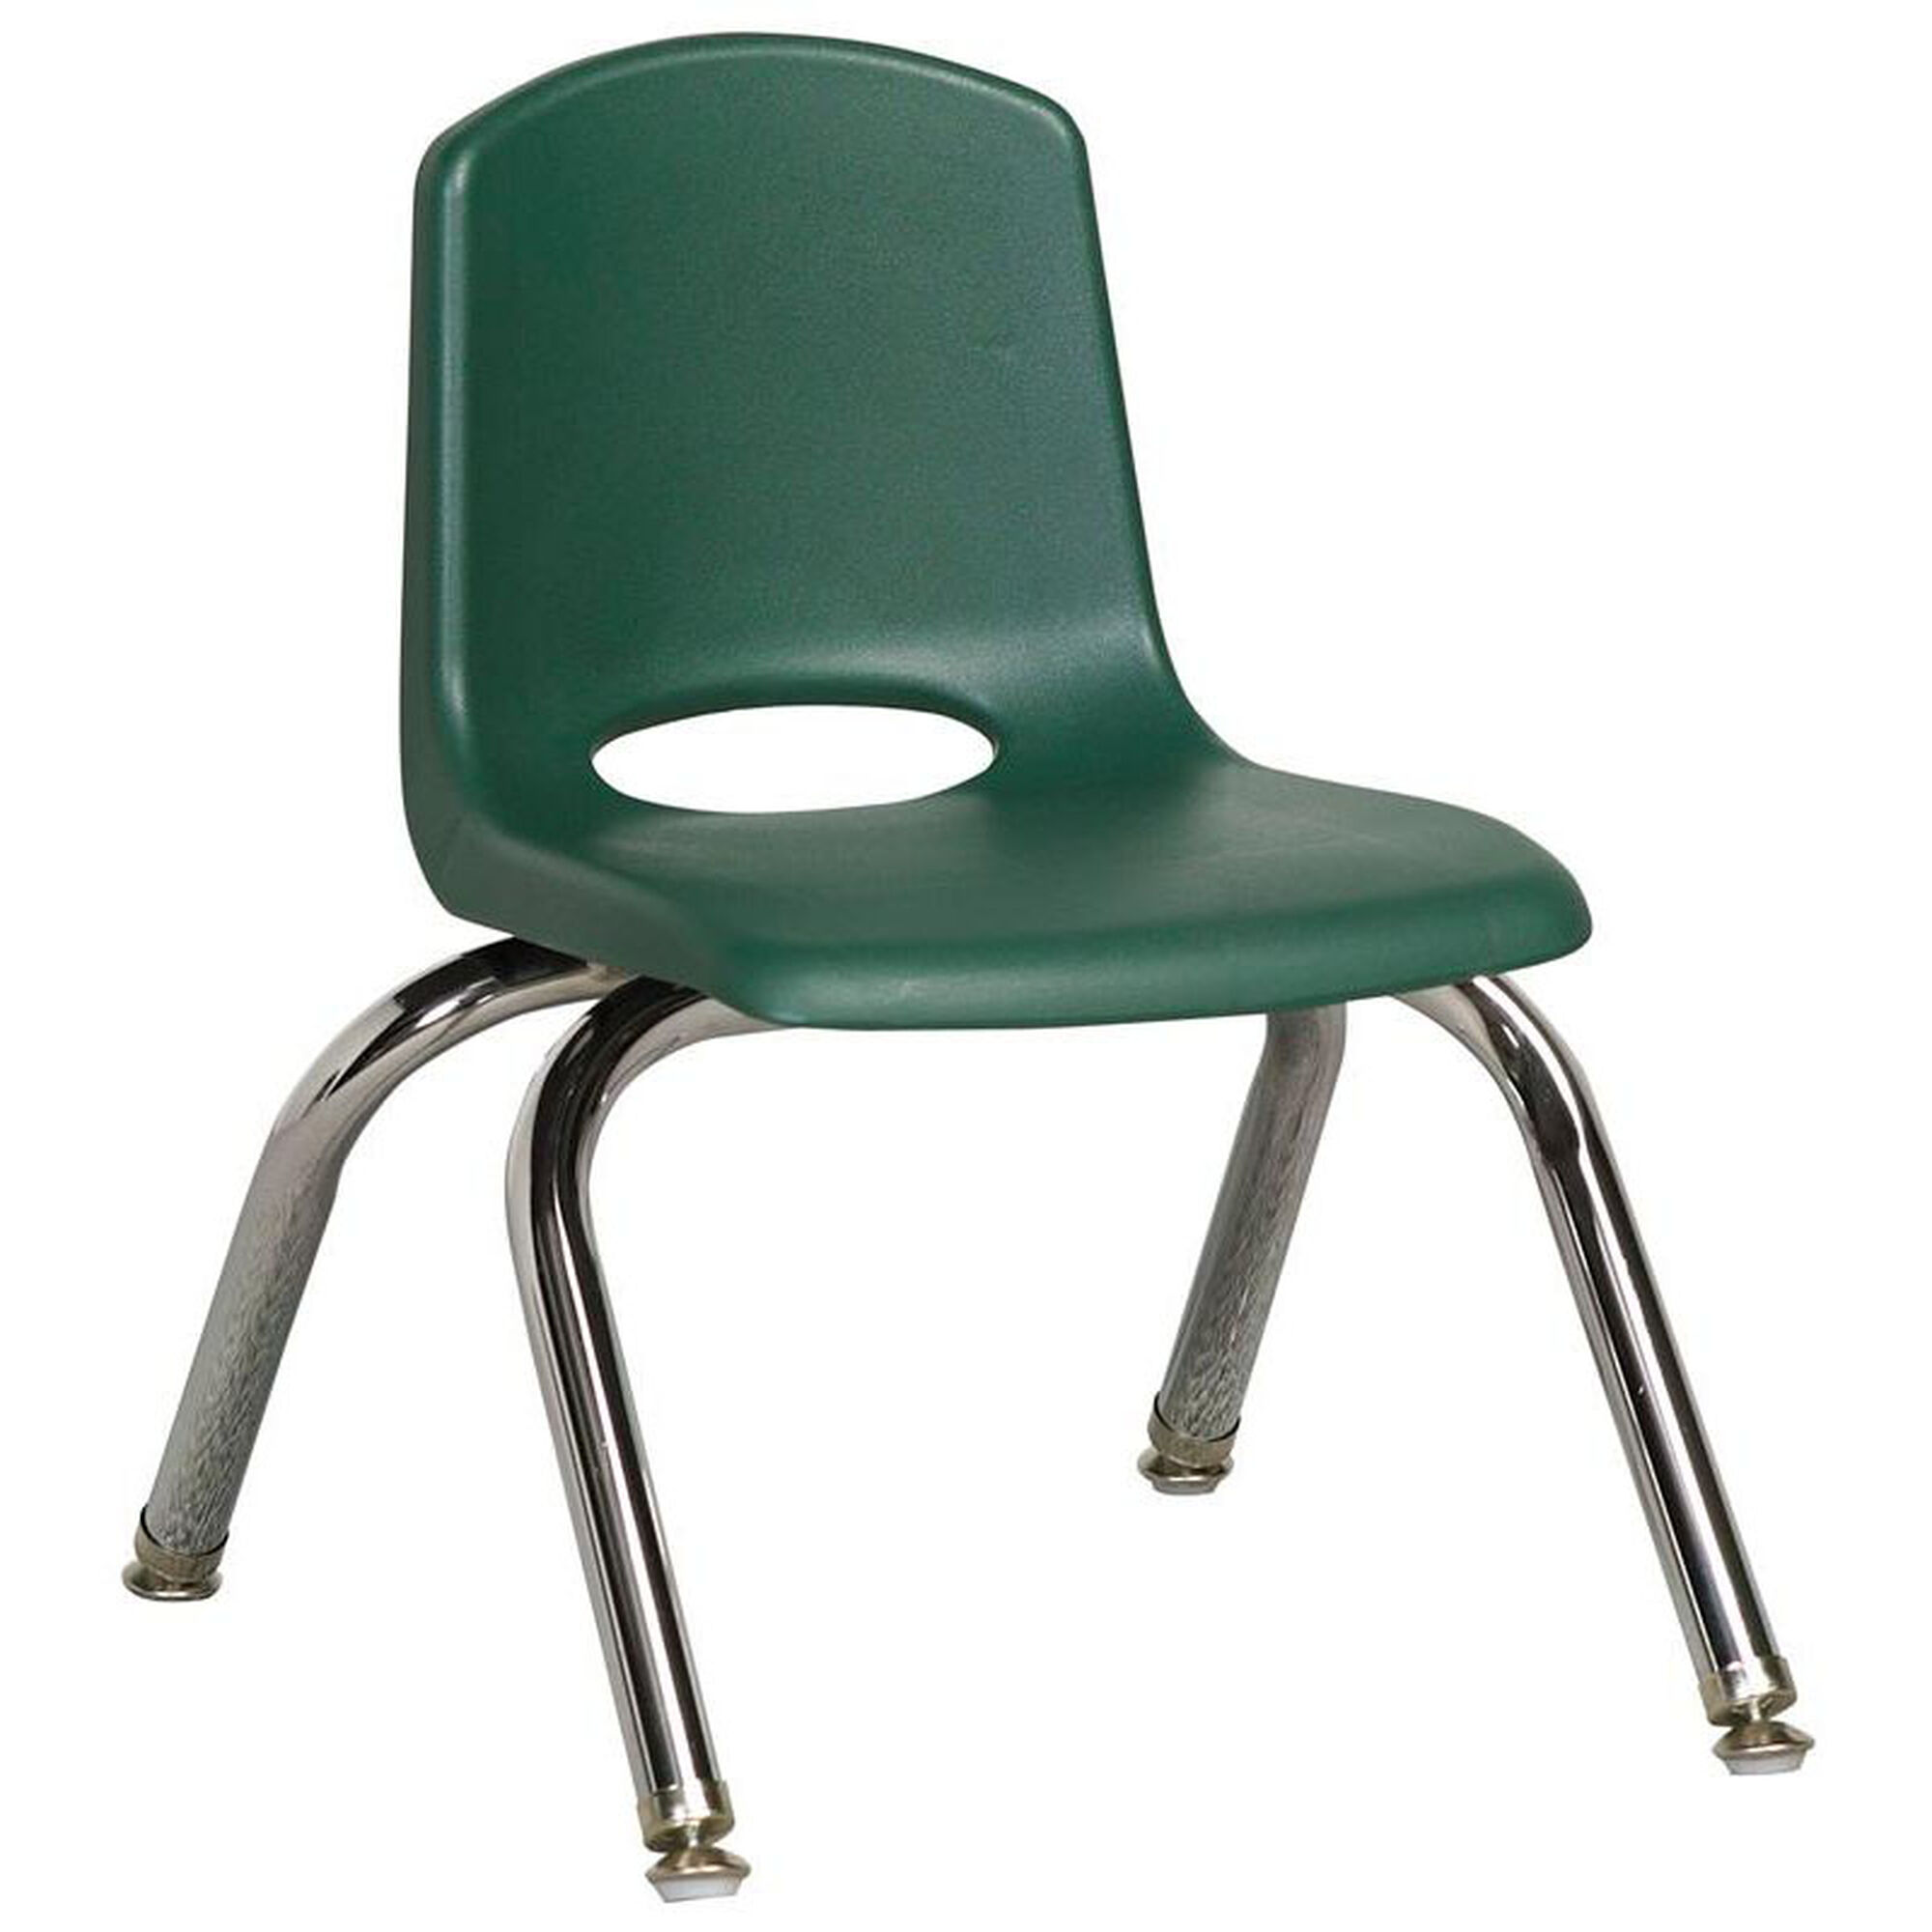 Ecr4kids 10 H Vented Back Stacking Chair With Chrome Legs